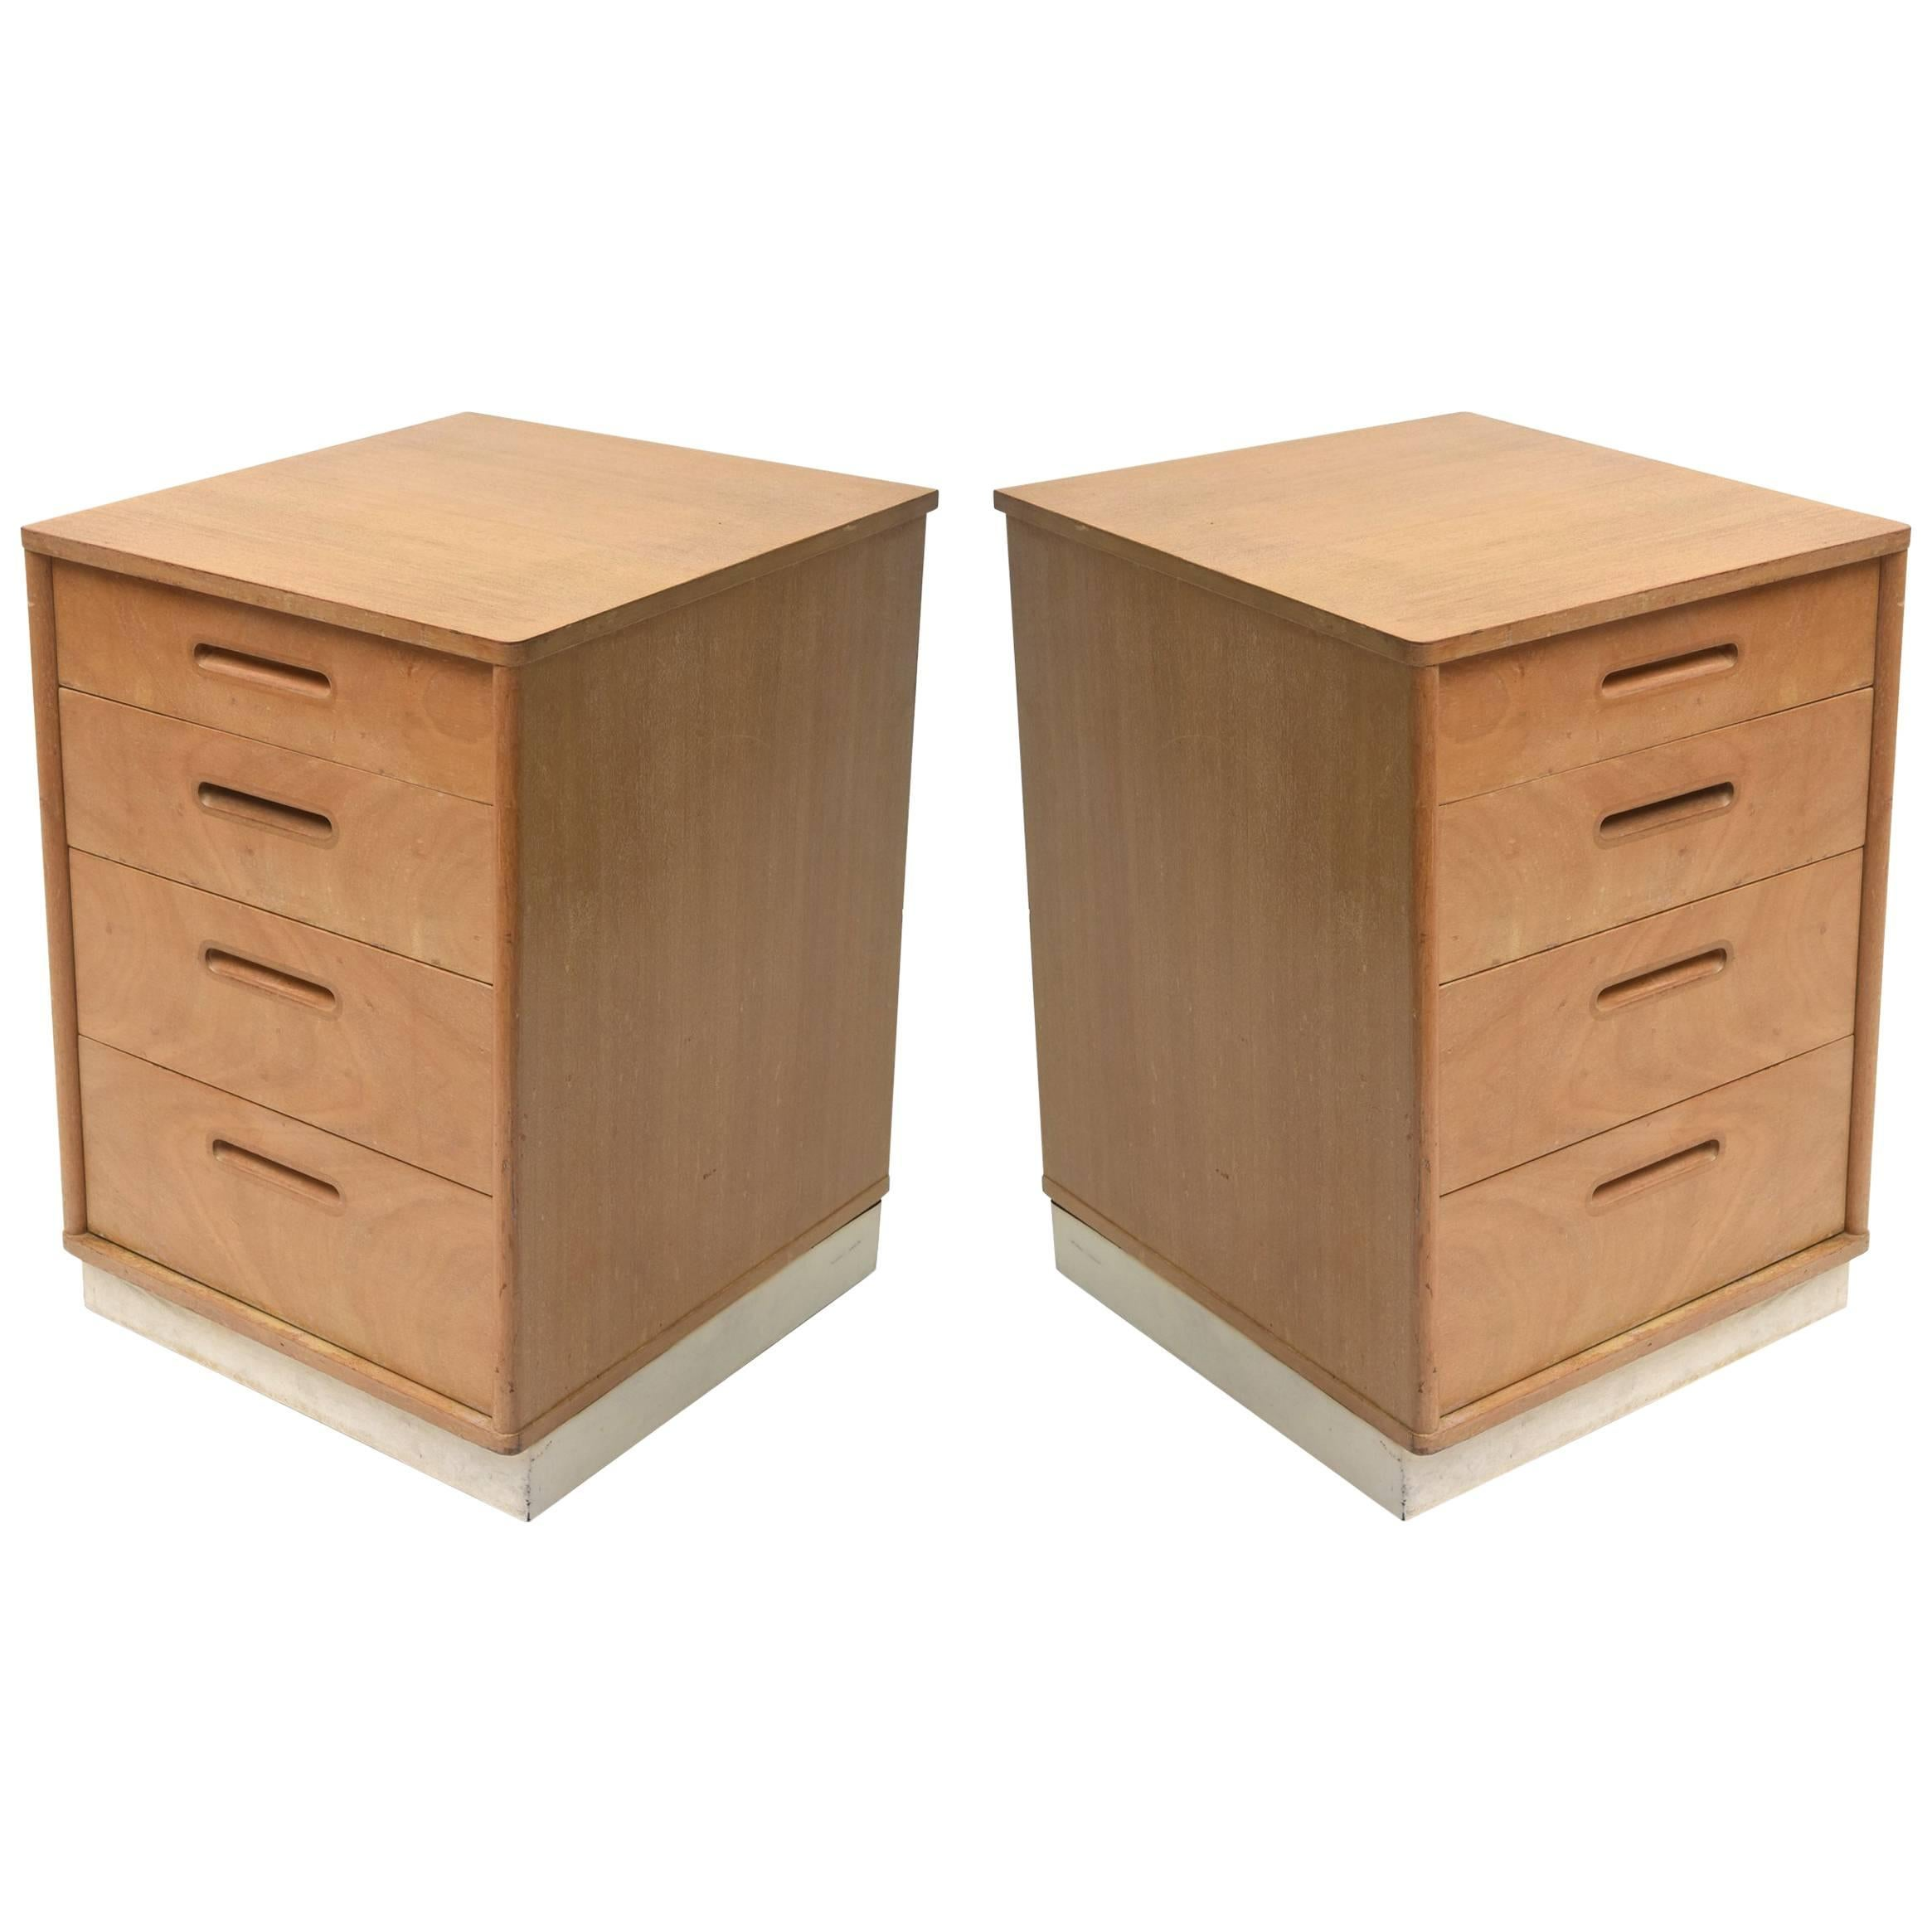 Edward Wormley Small Chests or Nightstands